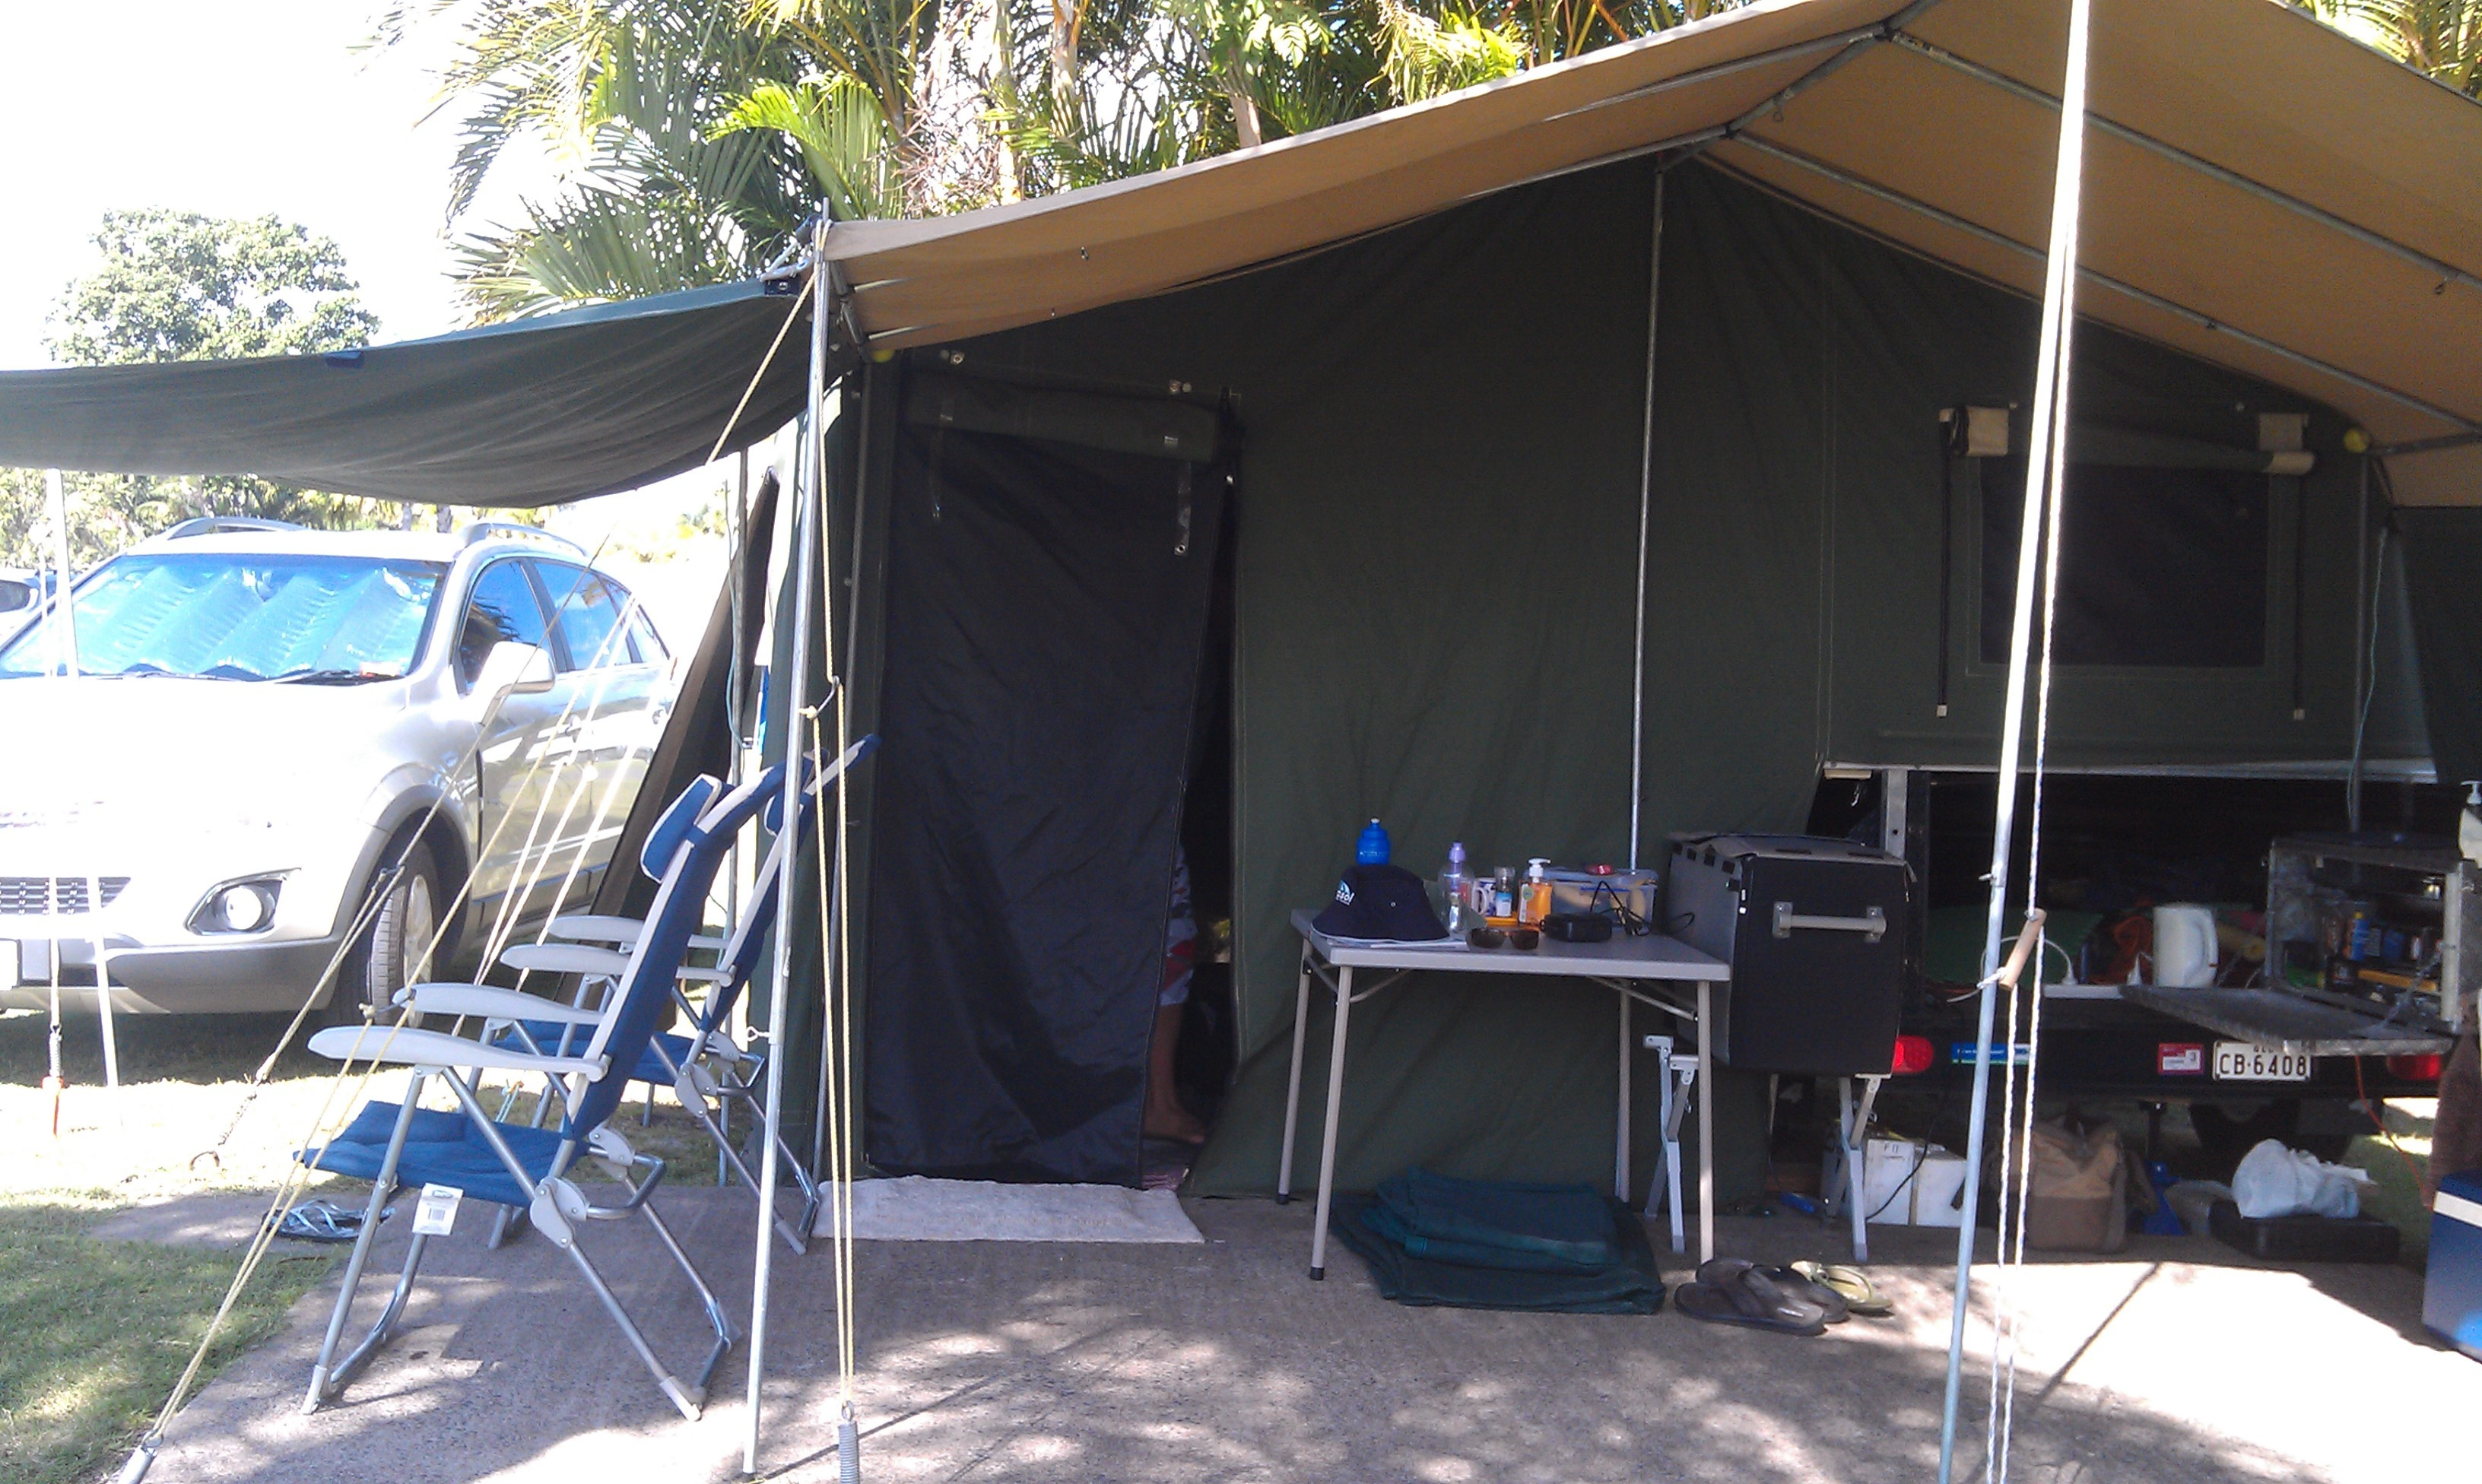 Billabong camper trailer. Very good condition. H/duty canvas , screens & flooring. Poles, ropes & pegs. No mould or holes. Water tank. 2 gas bottles. Treg hitch. Reg March 2016.